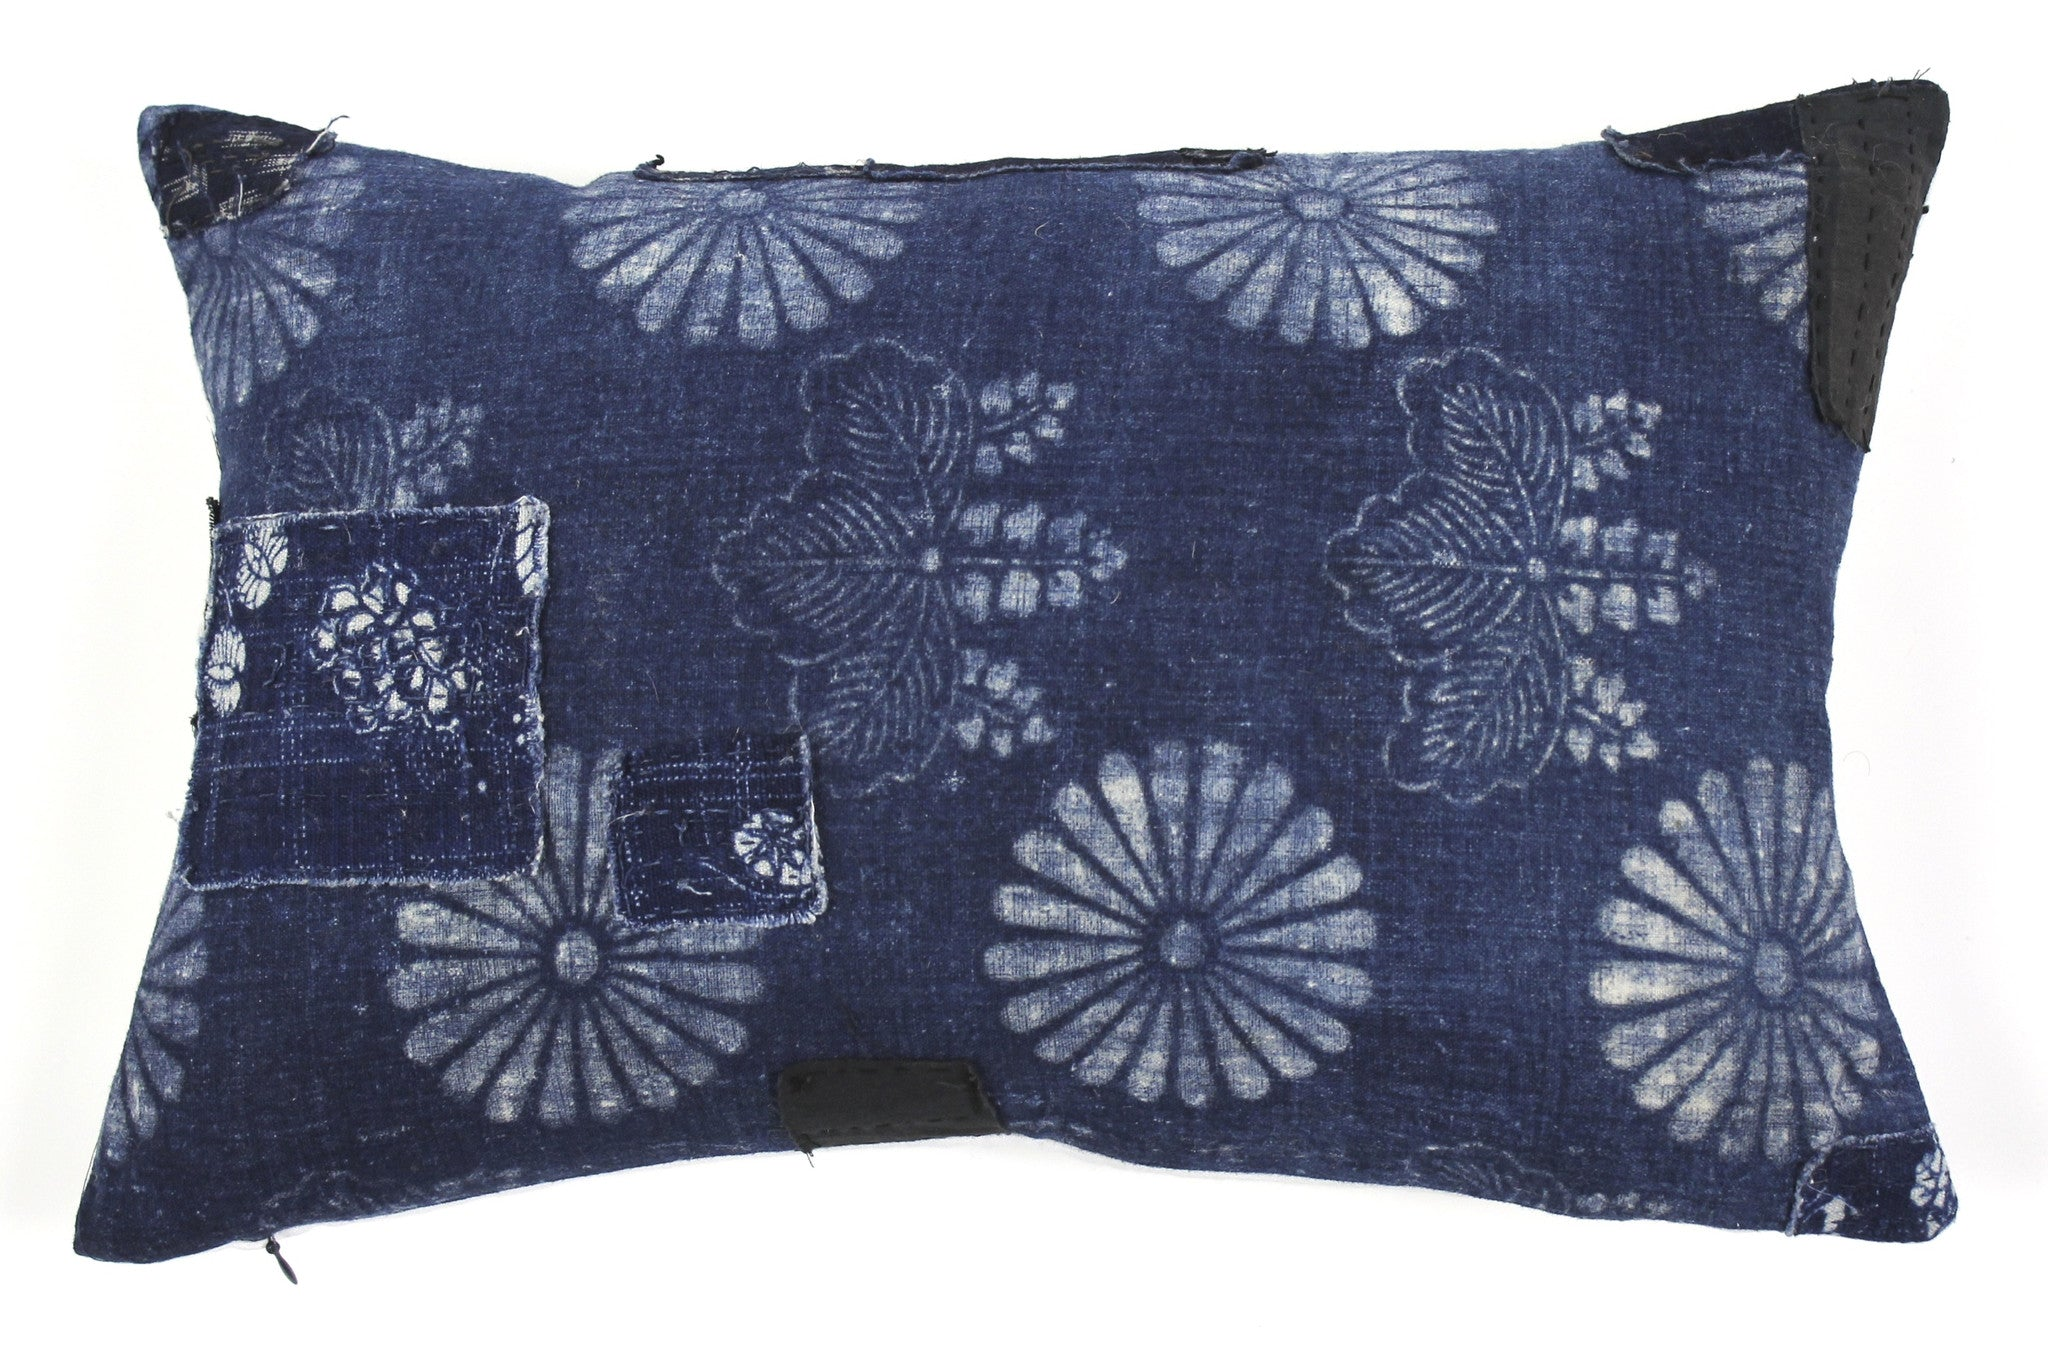 Boro indigo pillow Japan